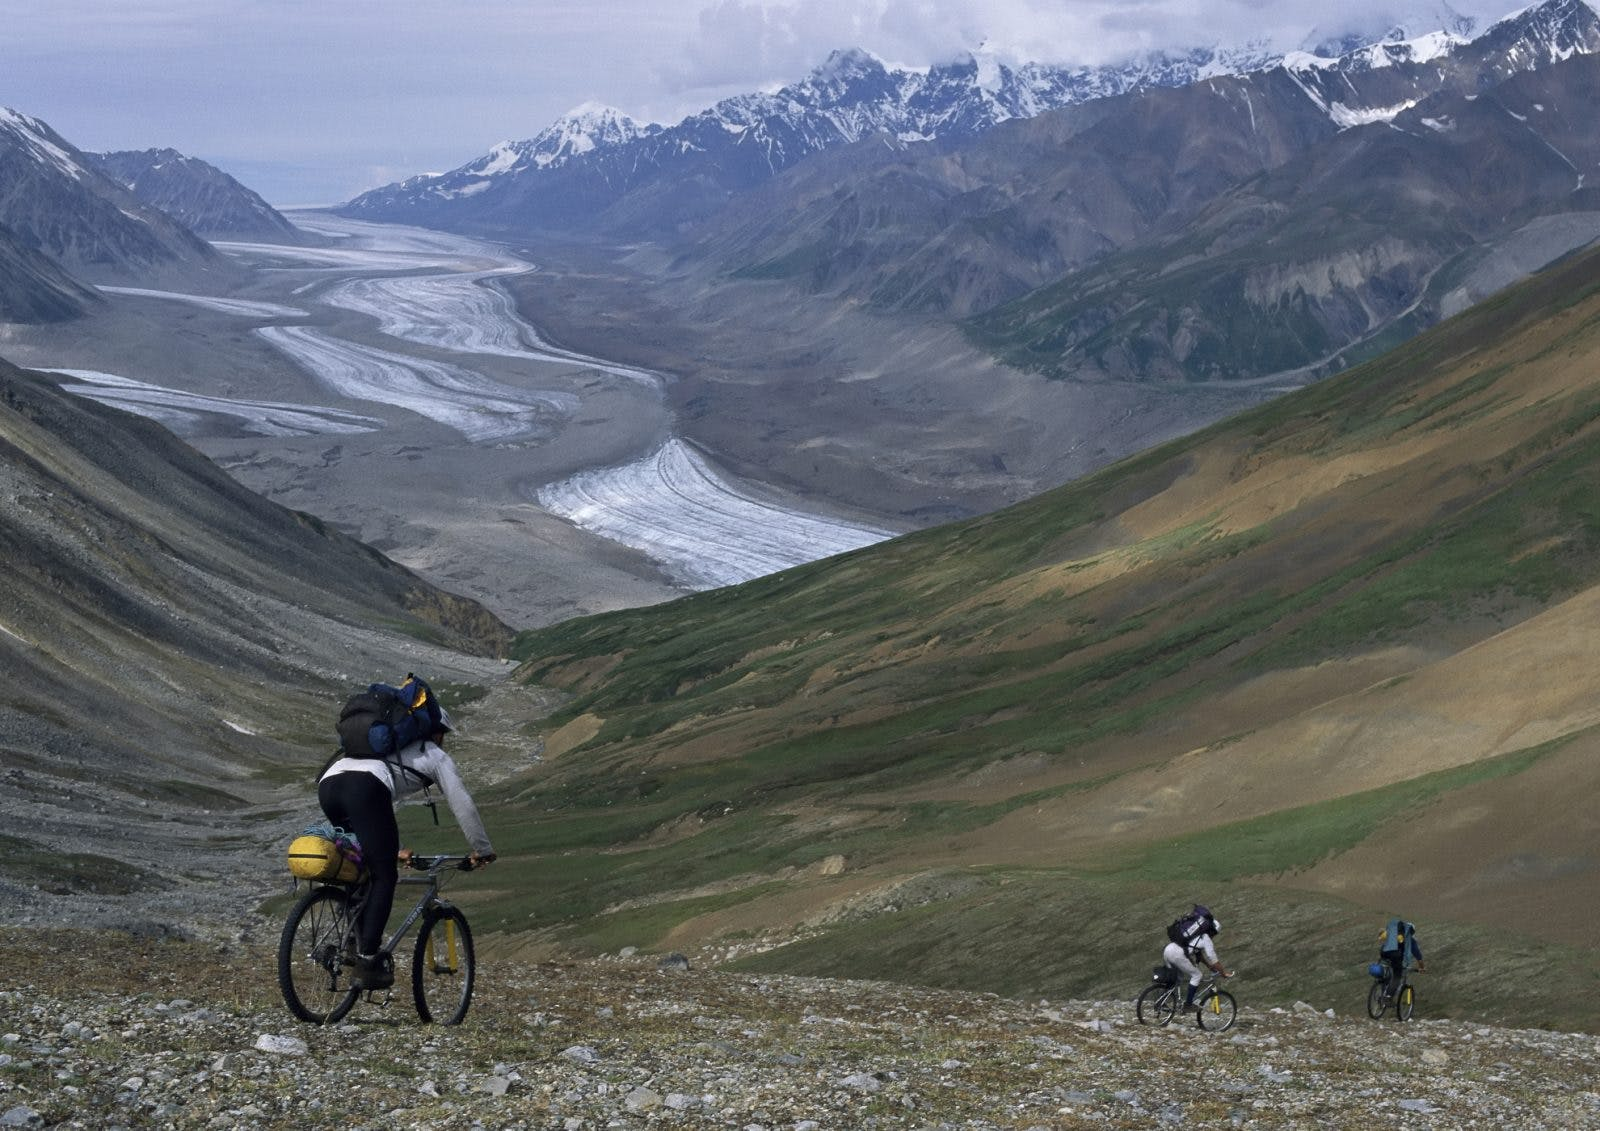 Expedition members descend a thousand feet toward the Black Rapids Glacier by bike. Photo by Bill Hatcher.Expedition members descend a thousand feet toward the Black Rapids Glacier by bike. Photo by Bill Hatcher.